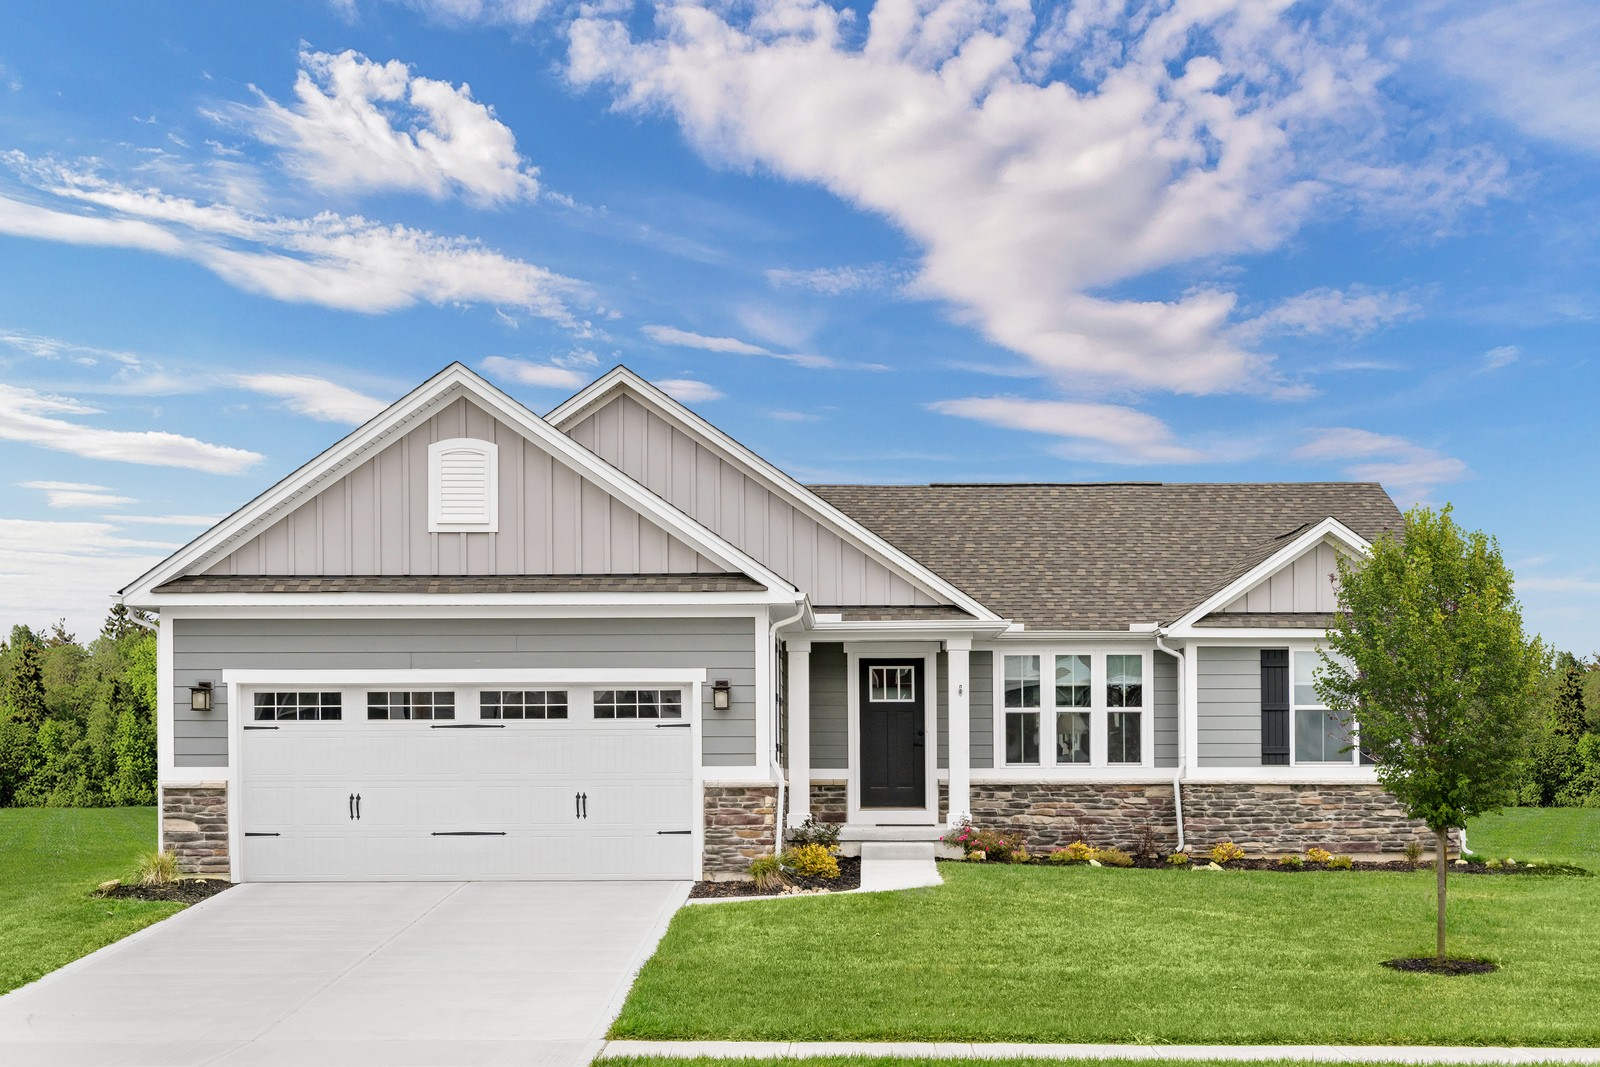 Aviano Included Basement Plan At Autumn Ridge In Lebanon Oh By Ryan Homes